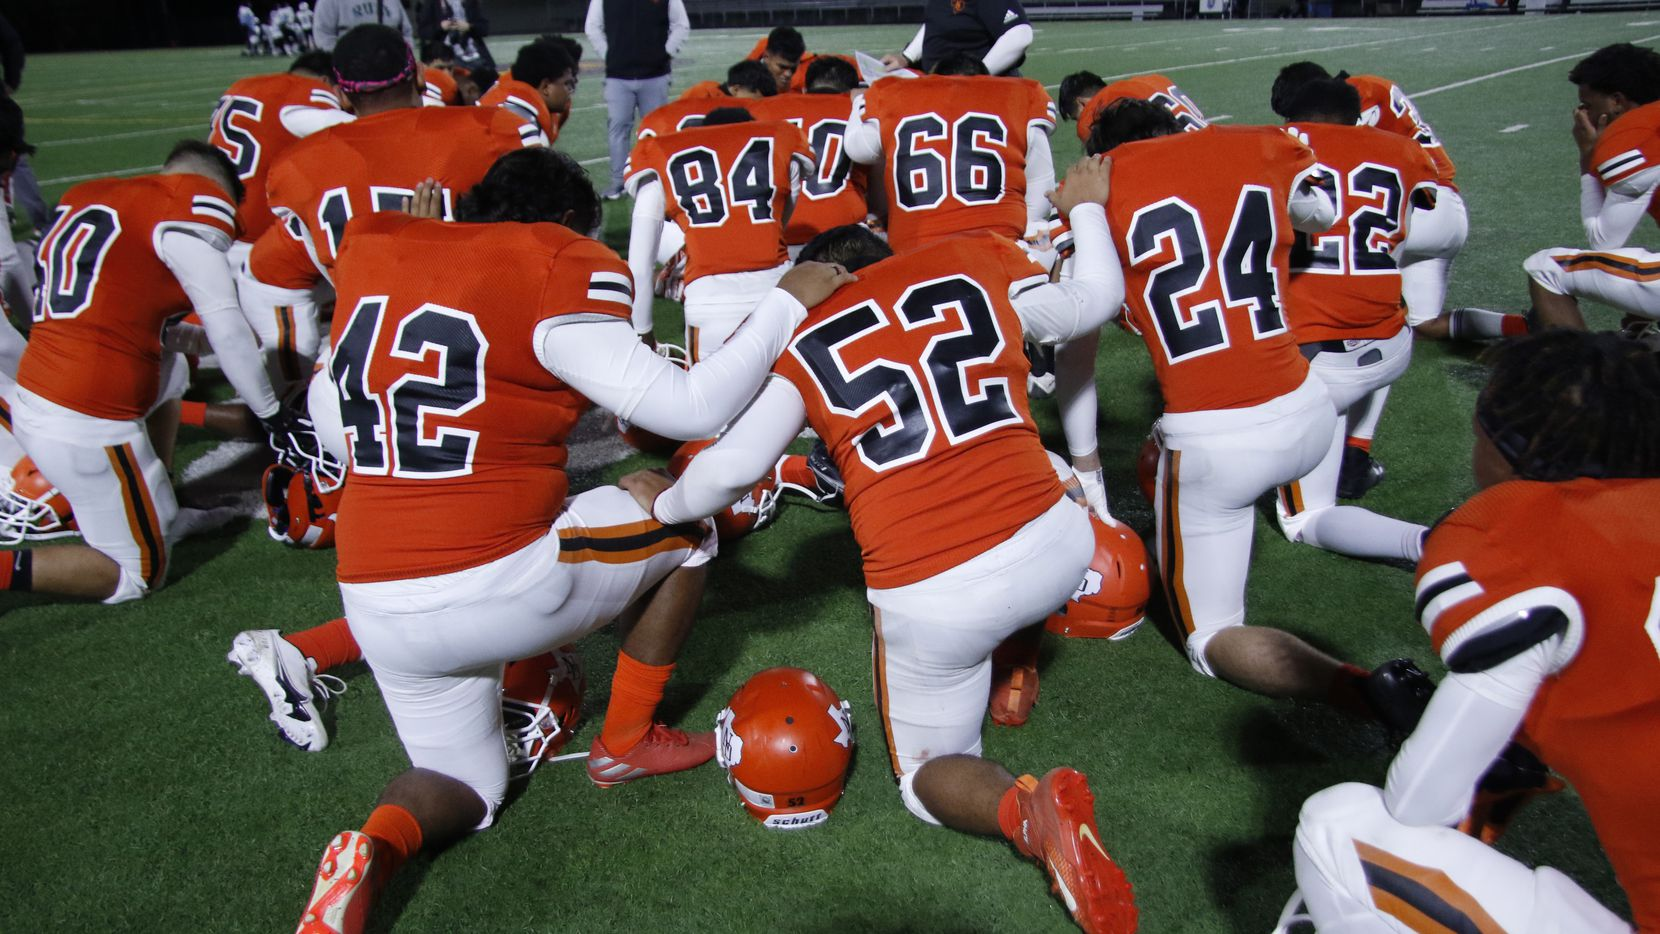 Following a talk by head coach Bobby Estes, North Dallas players pause for a prayer following their 12-7 loss to Roosevelt on October 29, 2020. (Steve Hamm/ Special Contributor)